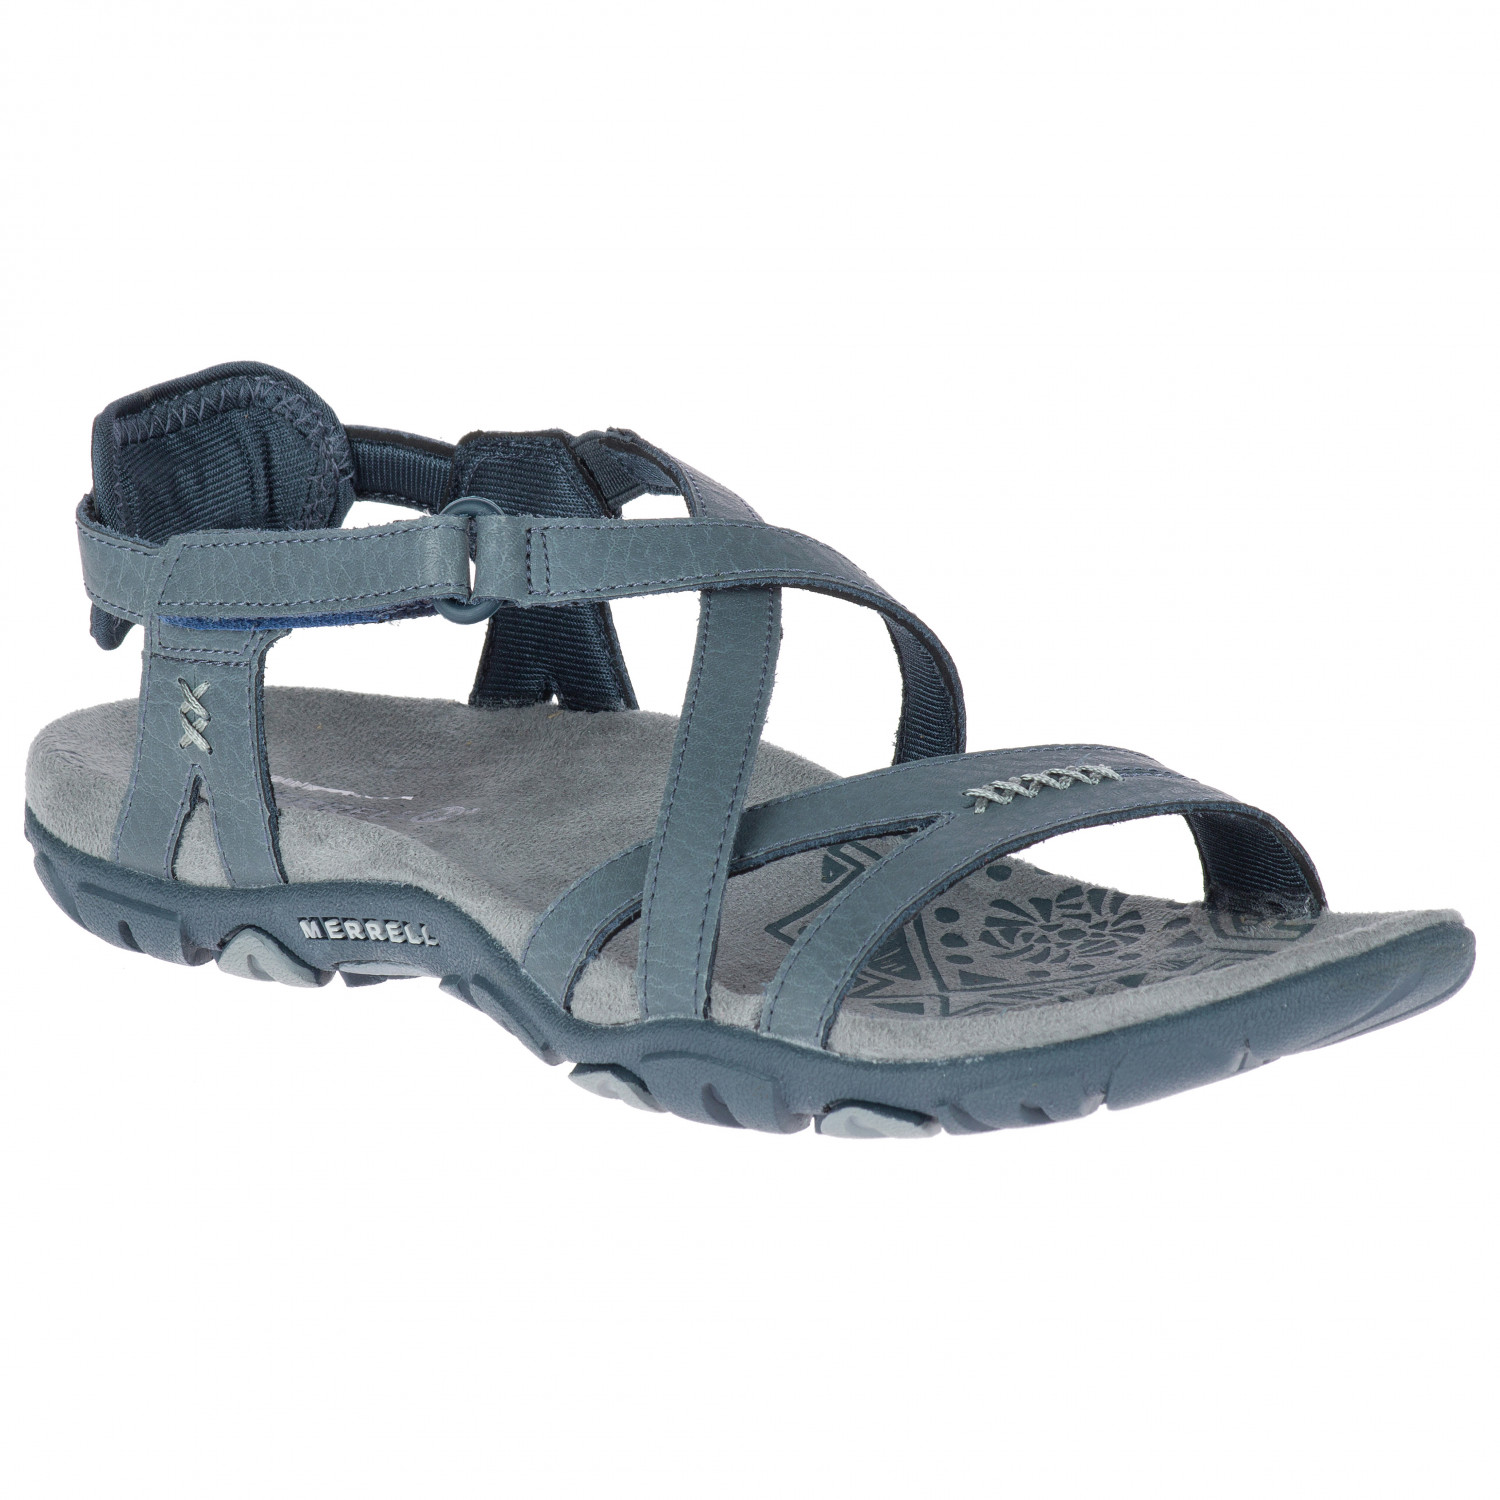 Merrell Sandspur Rose Leather Sandals Women S Buy